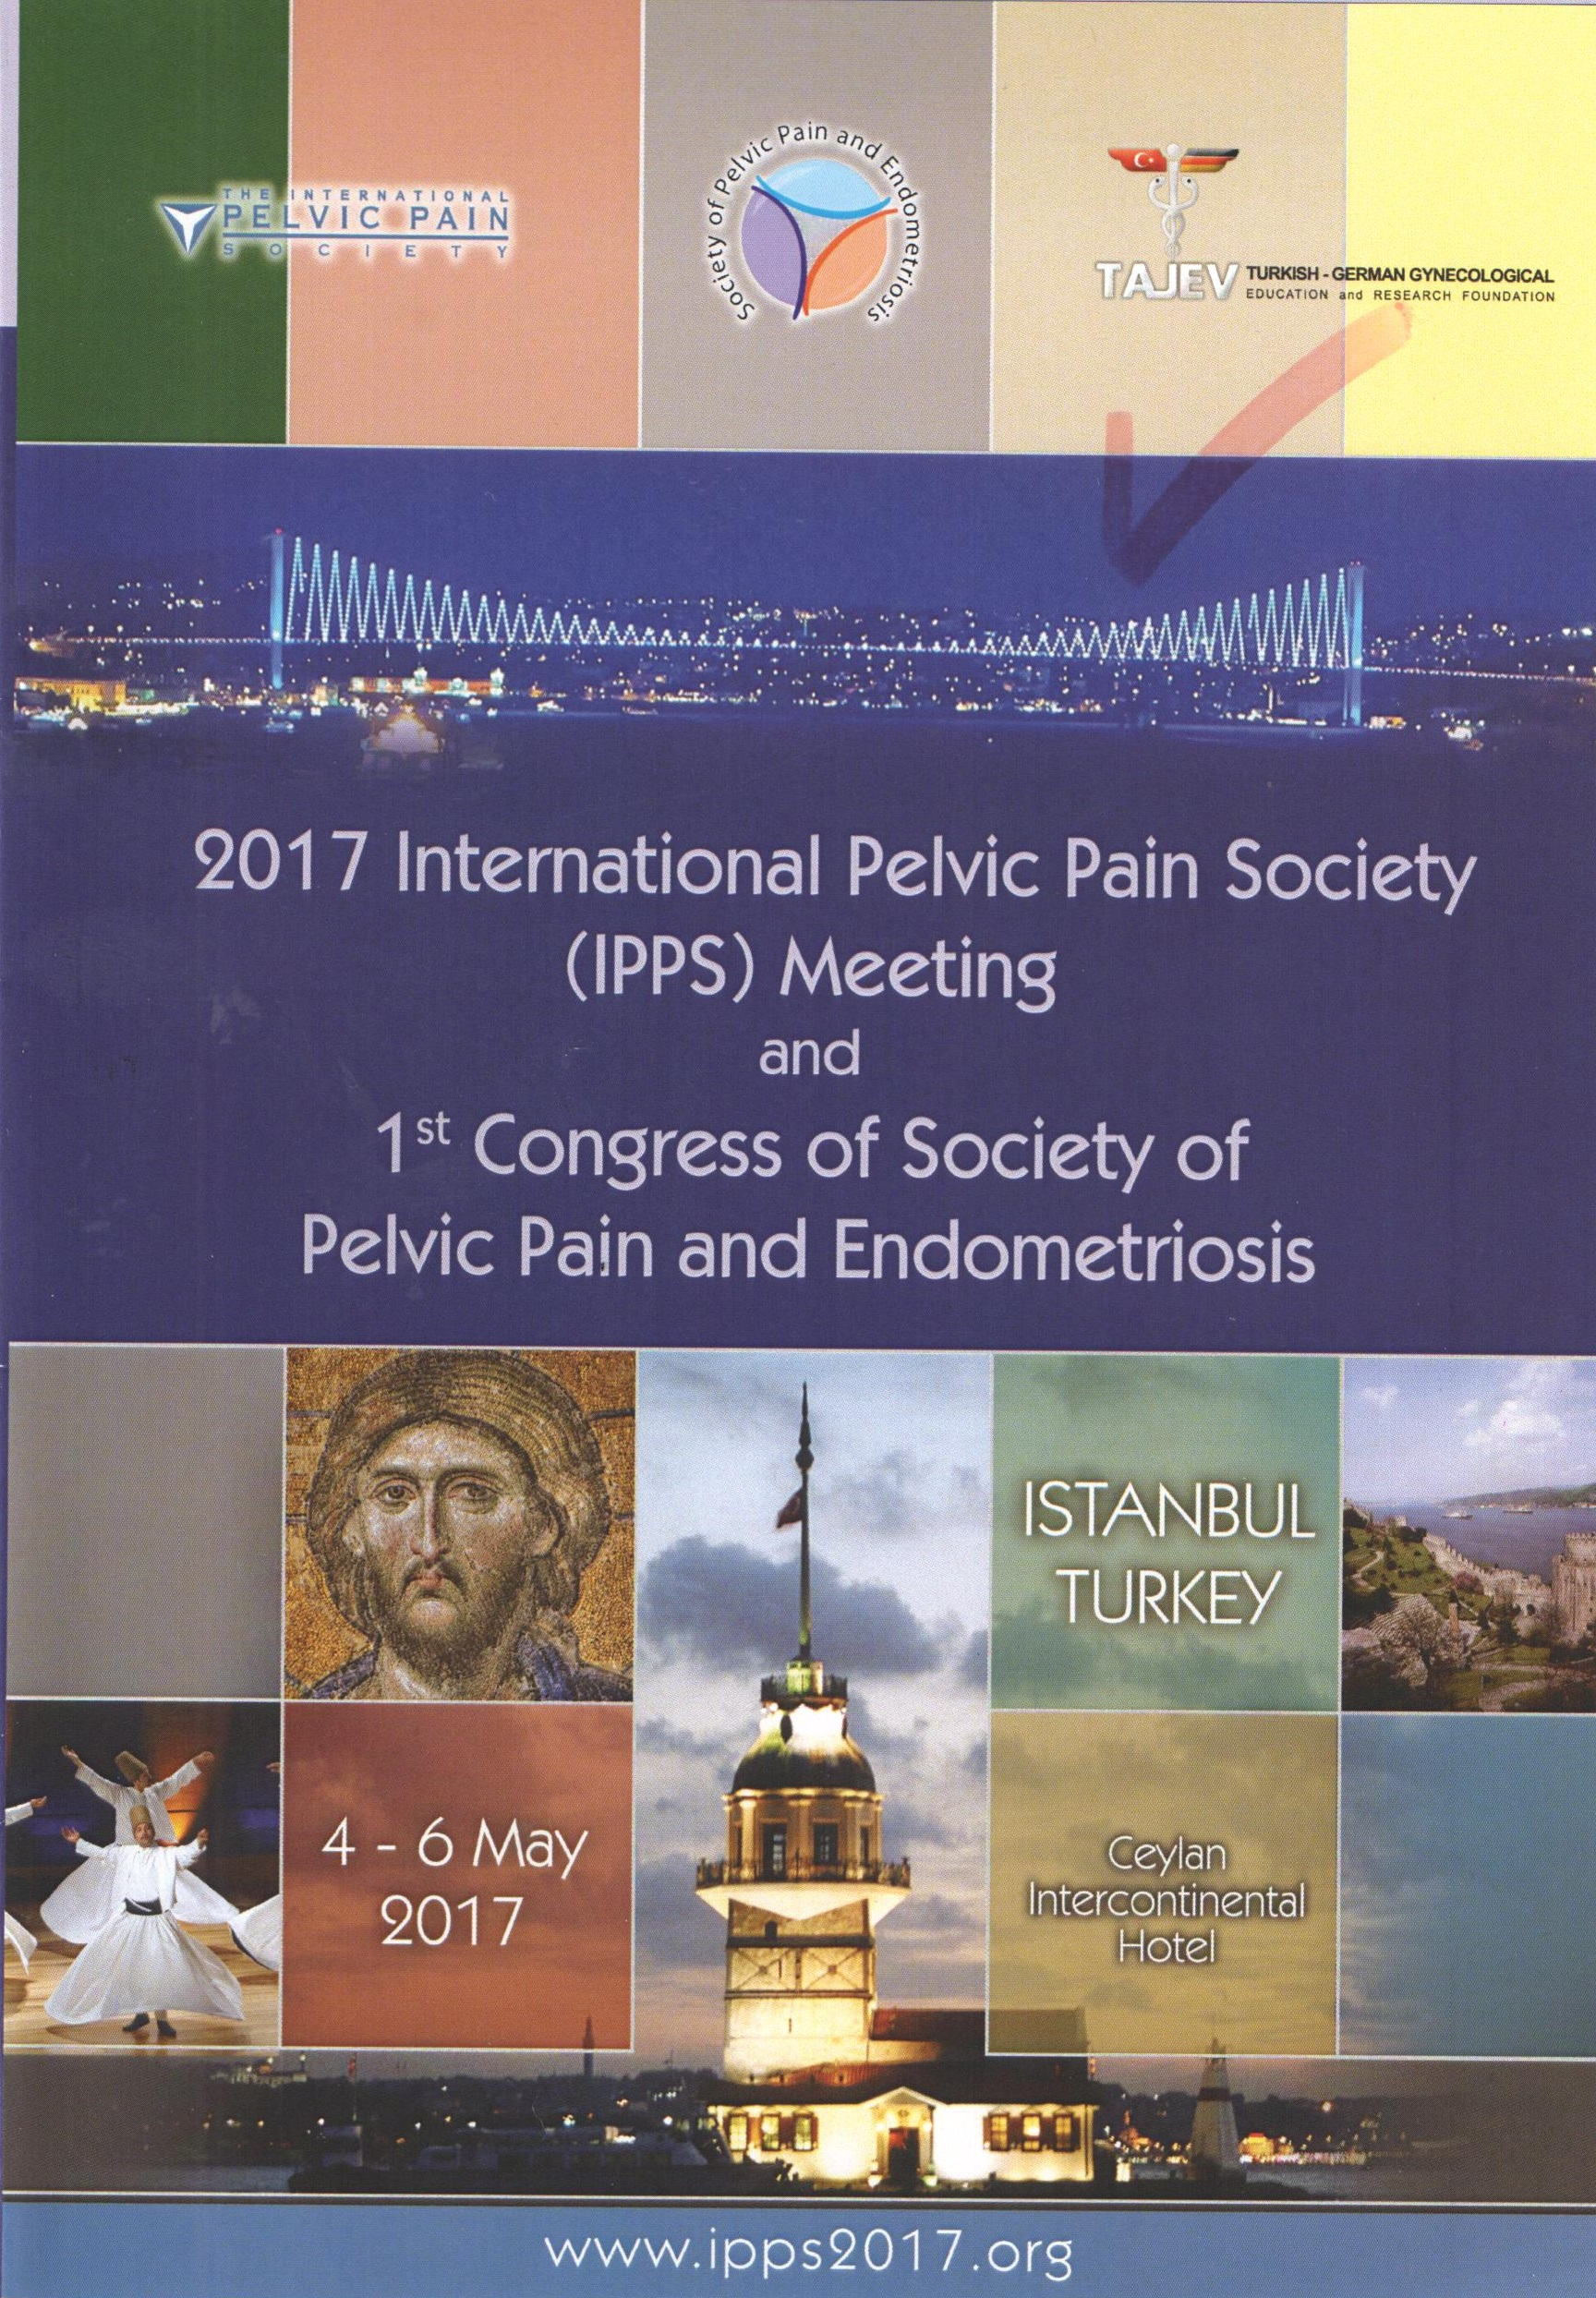 2017 International Pelvic Pain Society Meeting